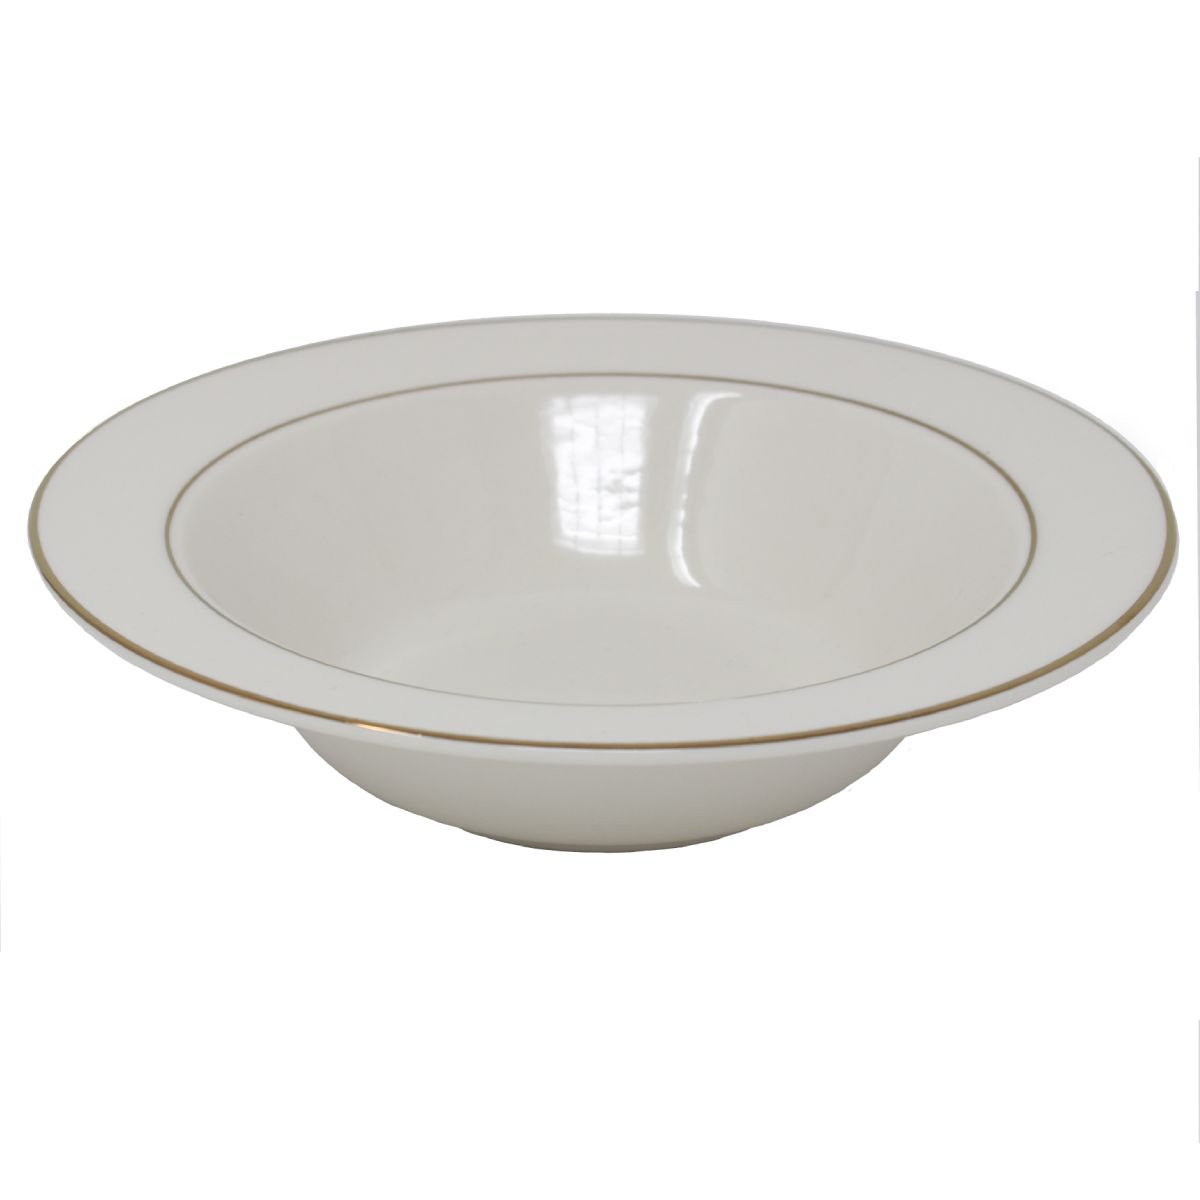 Serving Bowl Beige With Gold Band 20.5 Oz